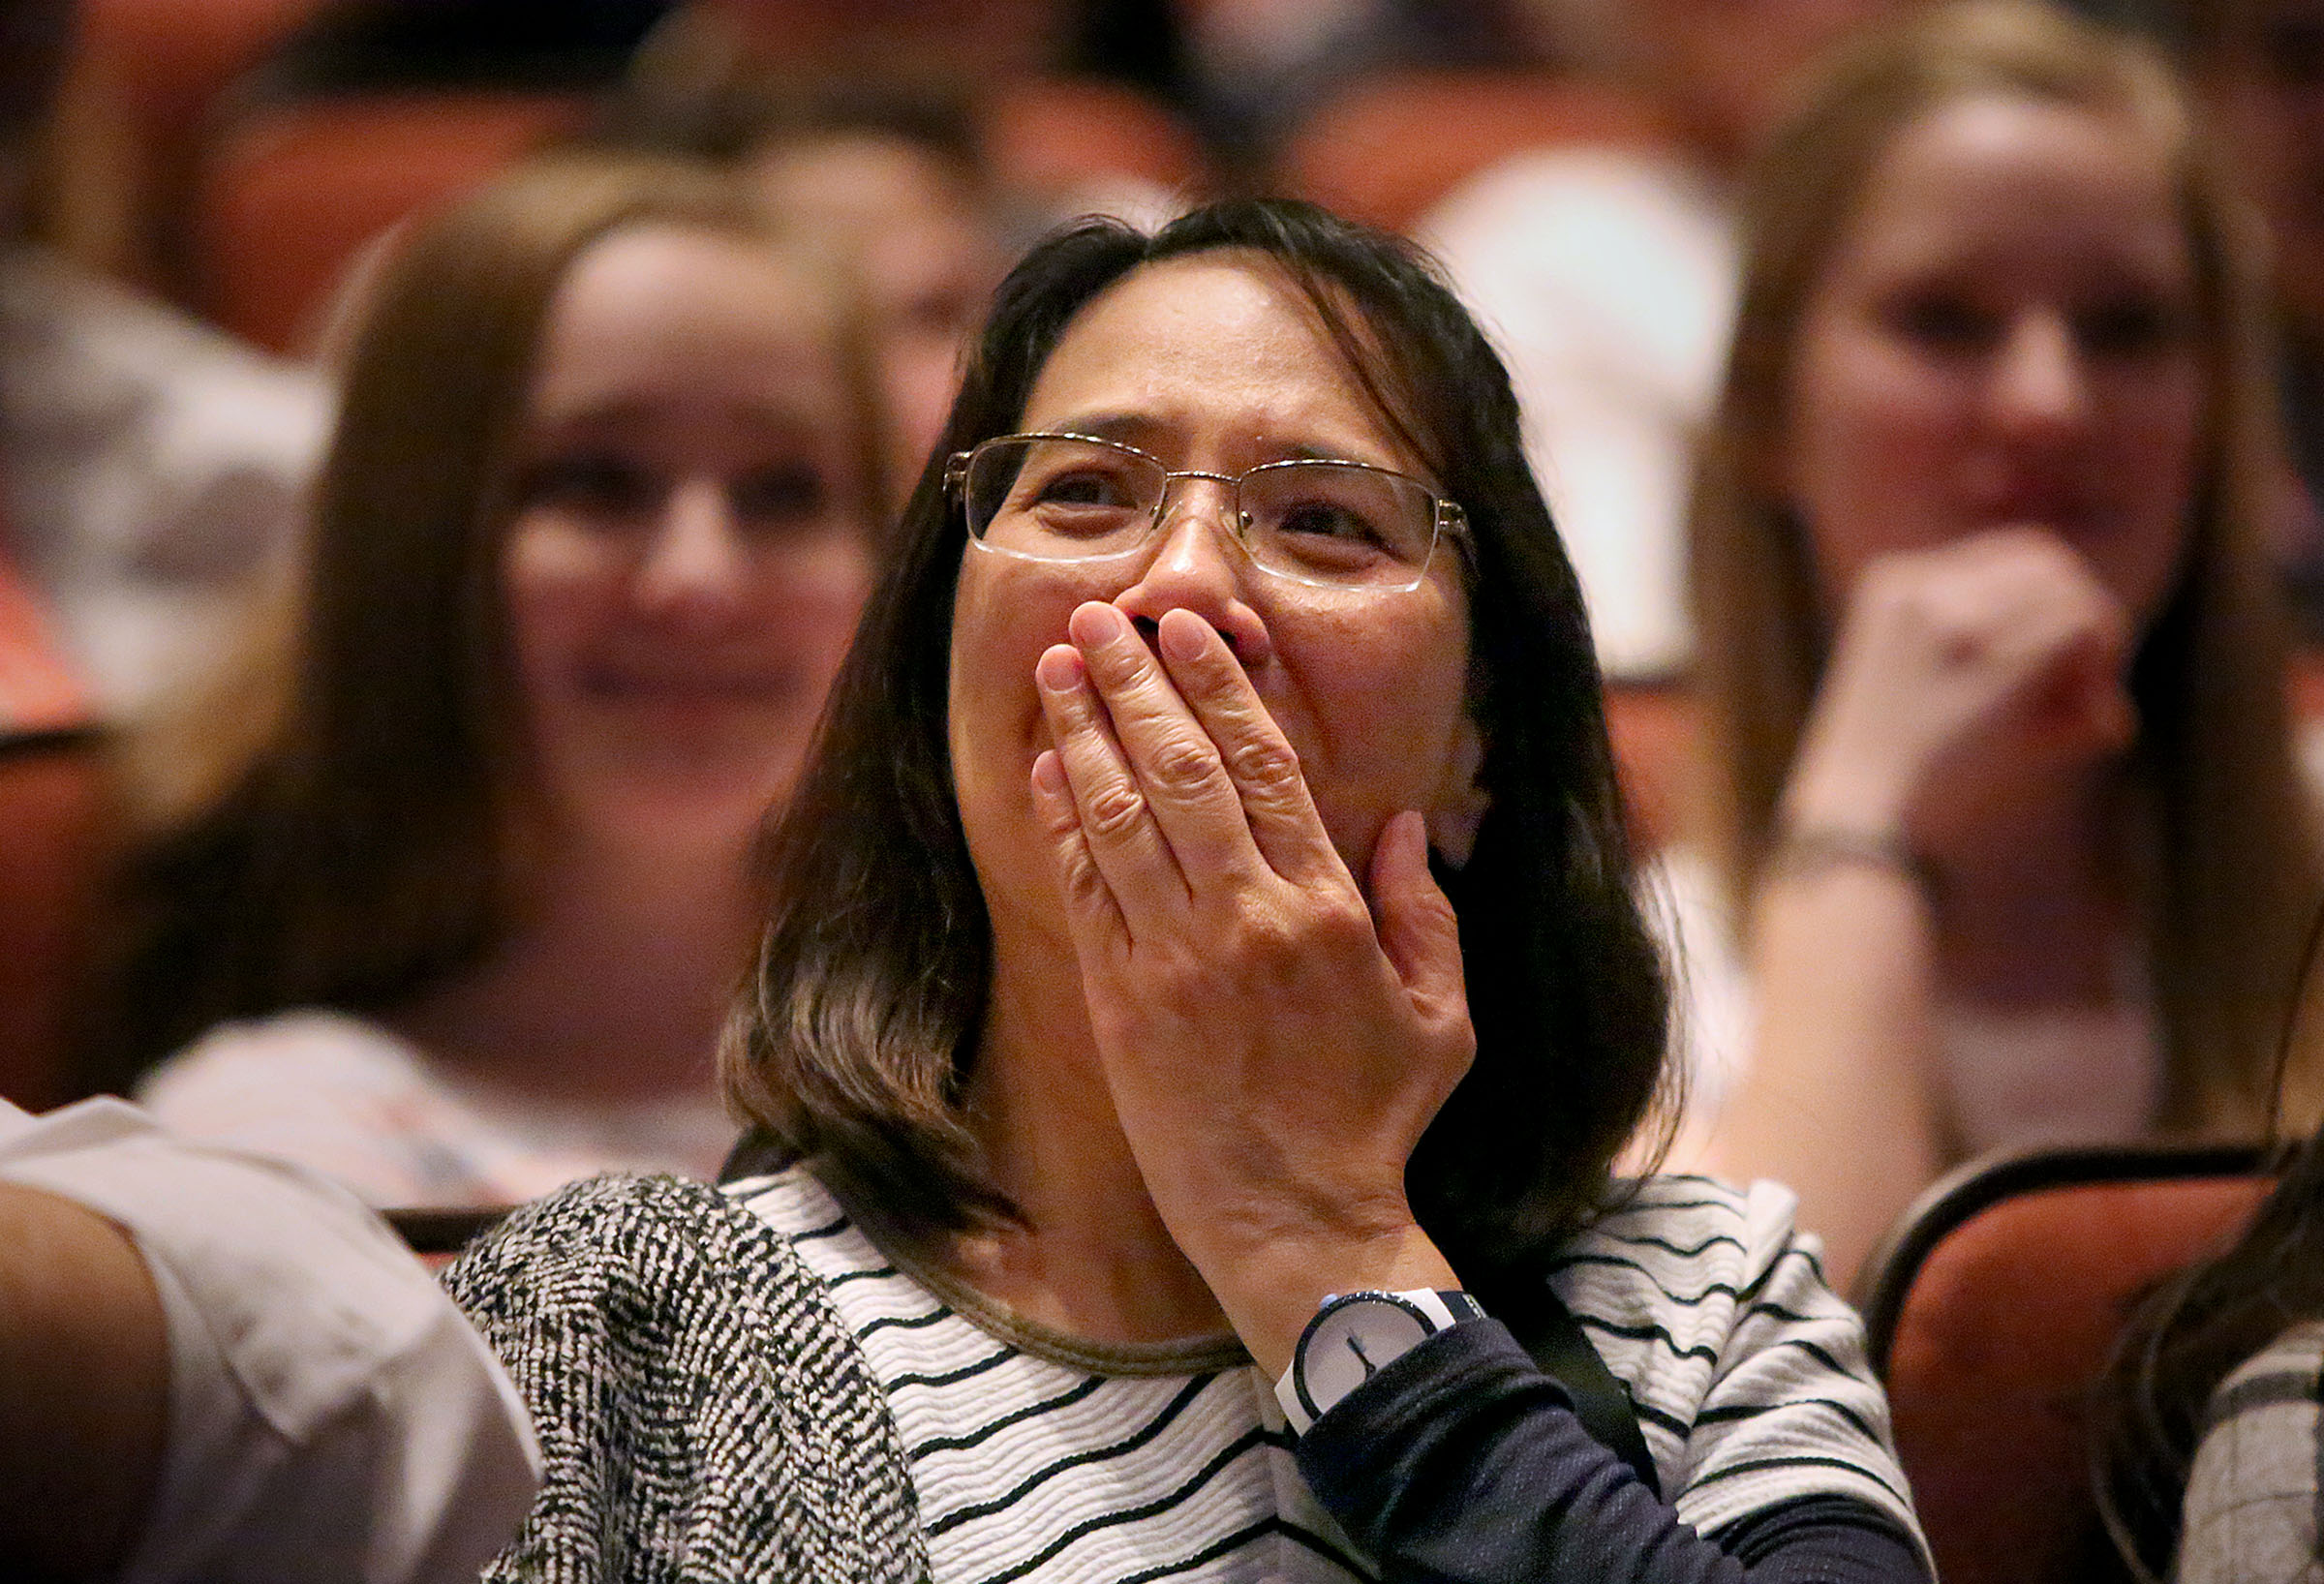 Cheryl Reyes reacts to LDS Church President Russell M. Nelson's announcement that there will be seven new temples around the world, including one in Layton, Utah, during the Sunday afternoon session of the 188th Annual General Conference of The Church of Jesus Christ of Latter-day Saints at the Conference Center in Salt Lake City on Sunday, April 1, 2018.